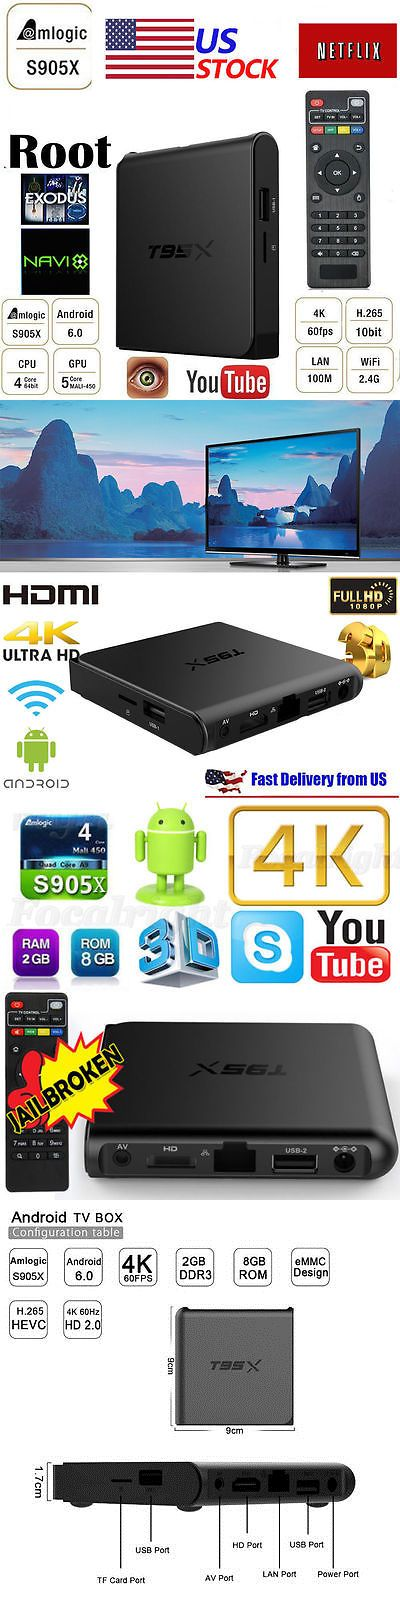 Home Audio: 2017 S905x 4K 2Gb+8Gb T95x Smart Android Tv Box Quad Core Fully Loaded Wifi Top -> BUY IT NOW ONLY: $40.08 on eBay!